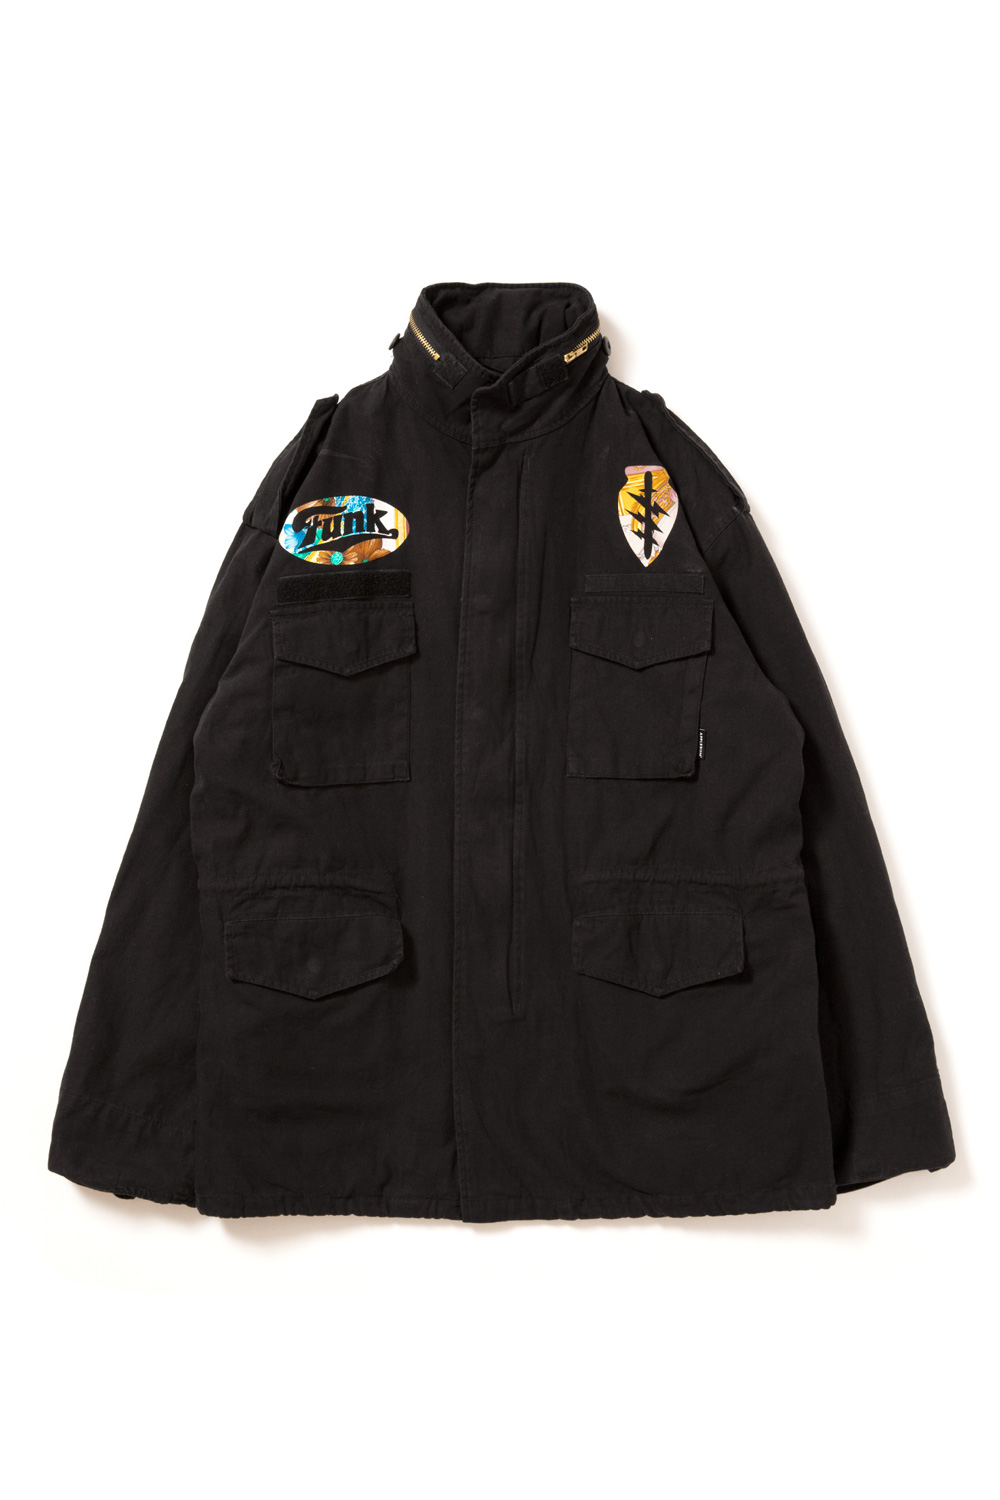 "画像1: 【APPLEBUM】PLAY for APPLEBUM ""LOVE"" M65 Jacket"